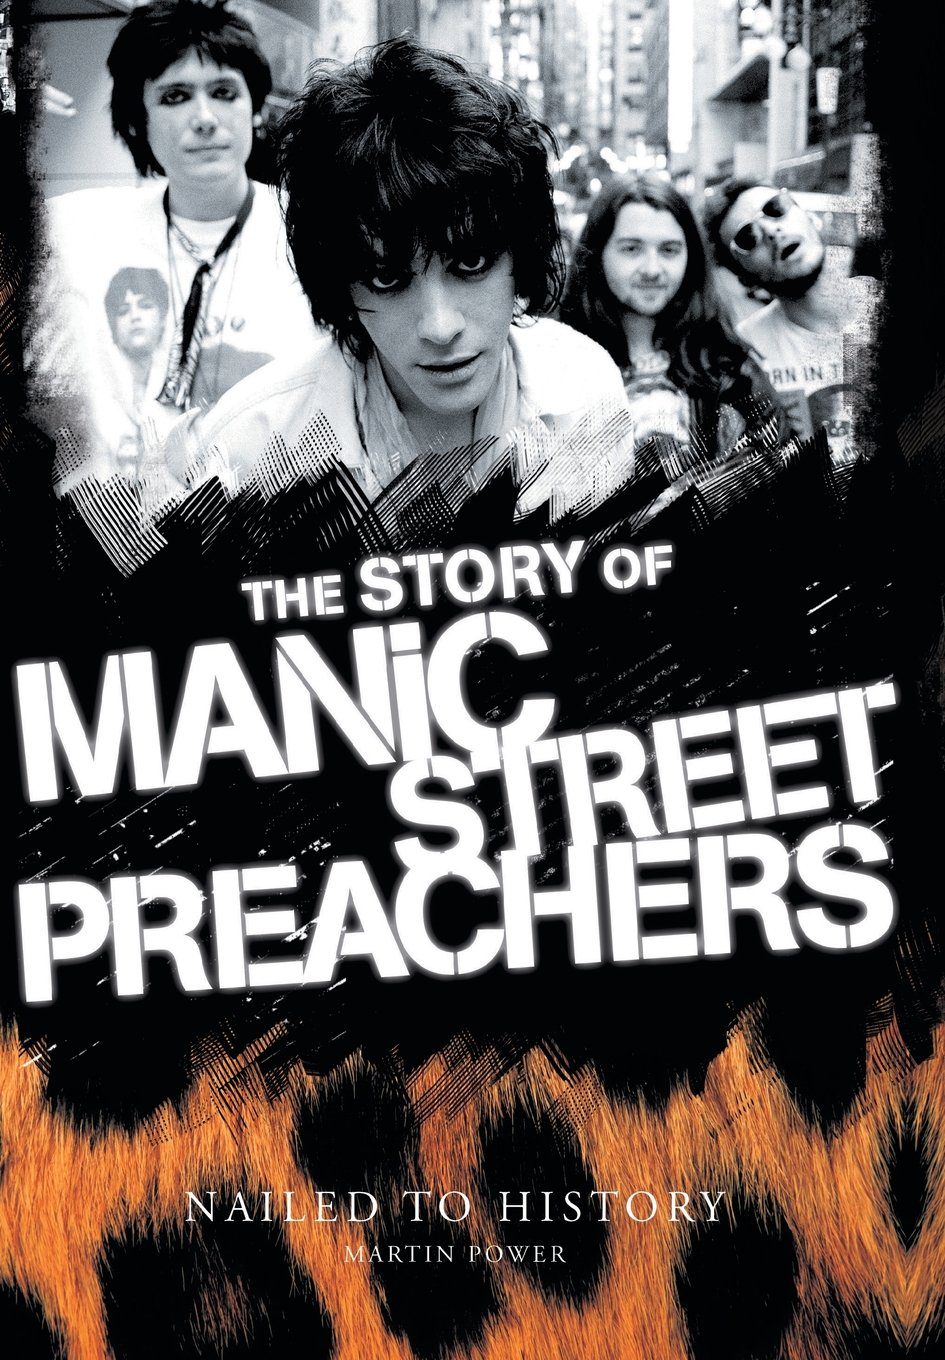 Nailed To History: The Story of the Manic Street Preachers pdf